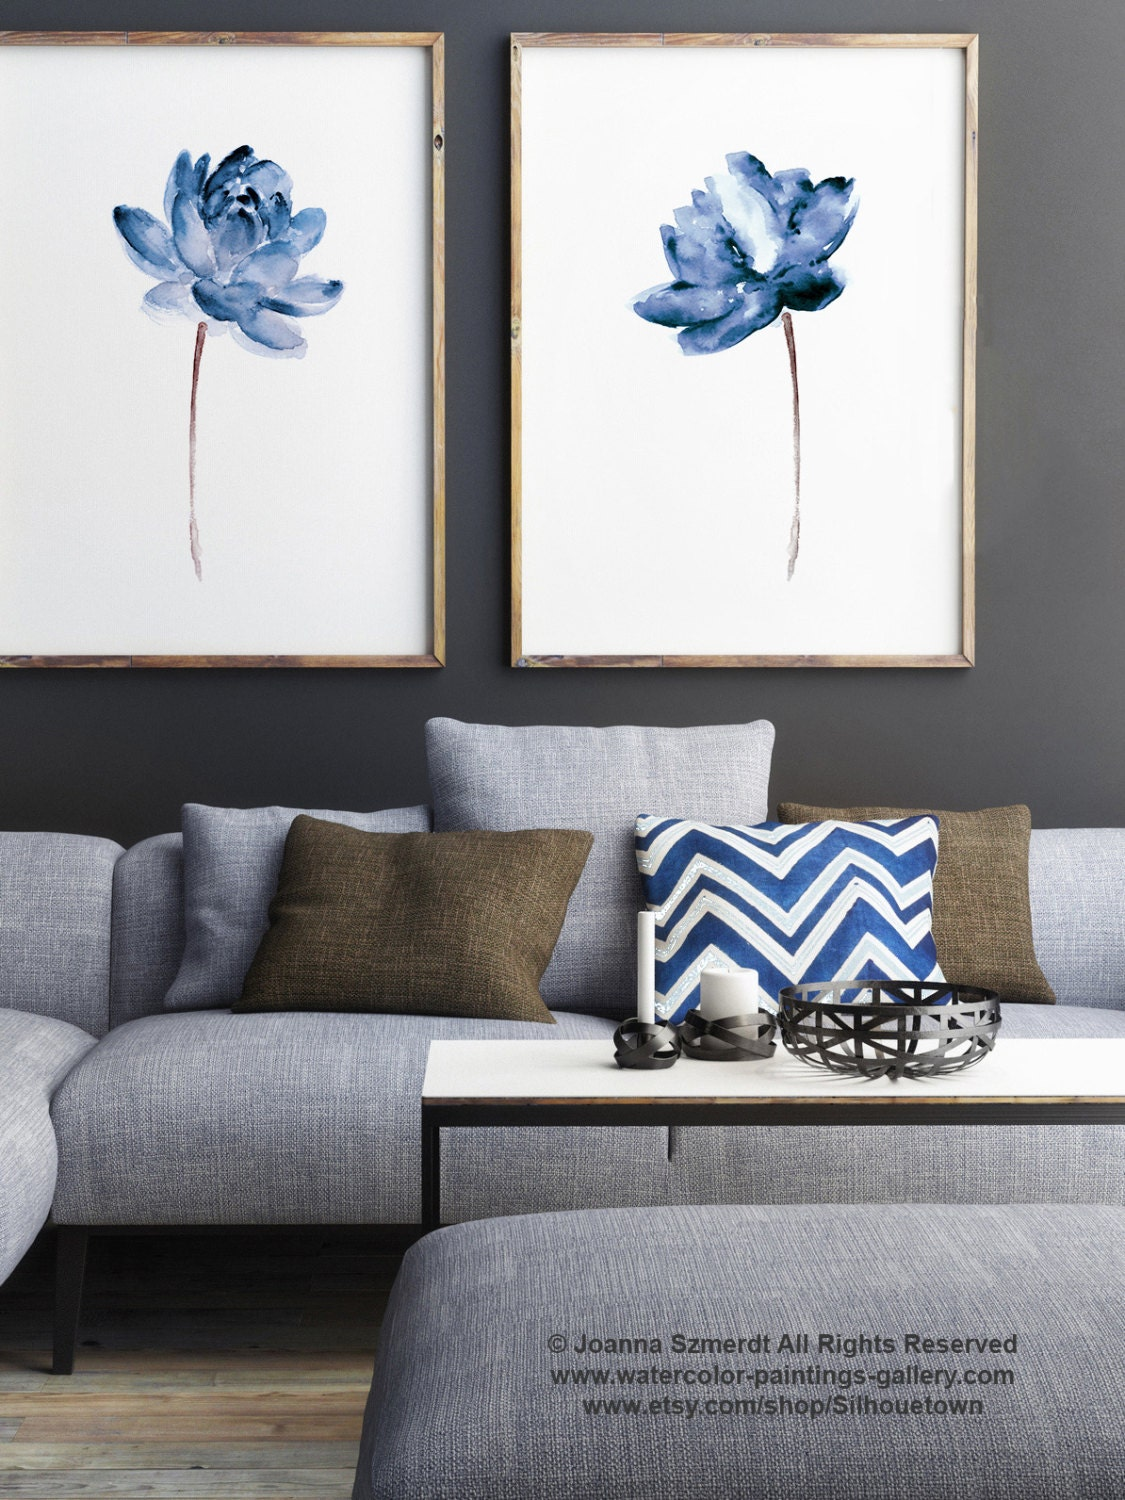 Lotus set of 2 watercolor painting blue water flowers art Decorating walls with posters